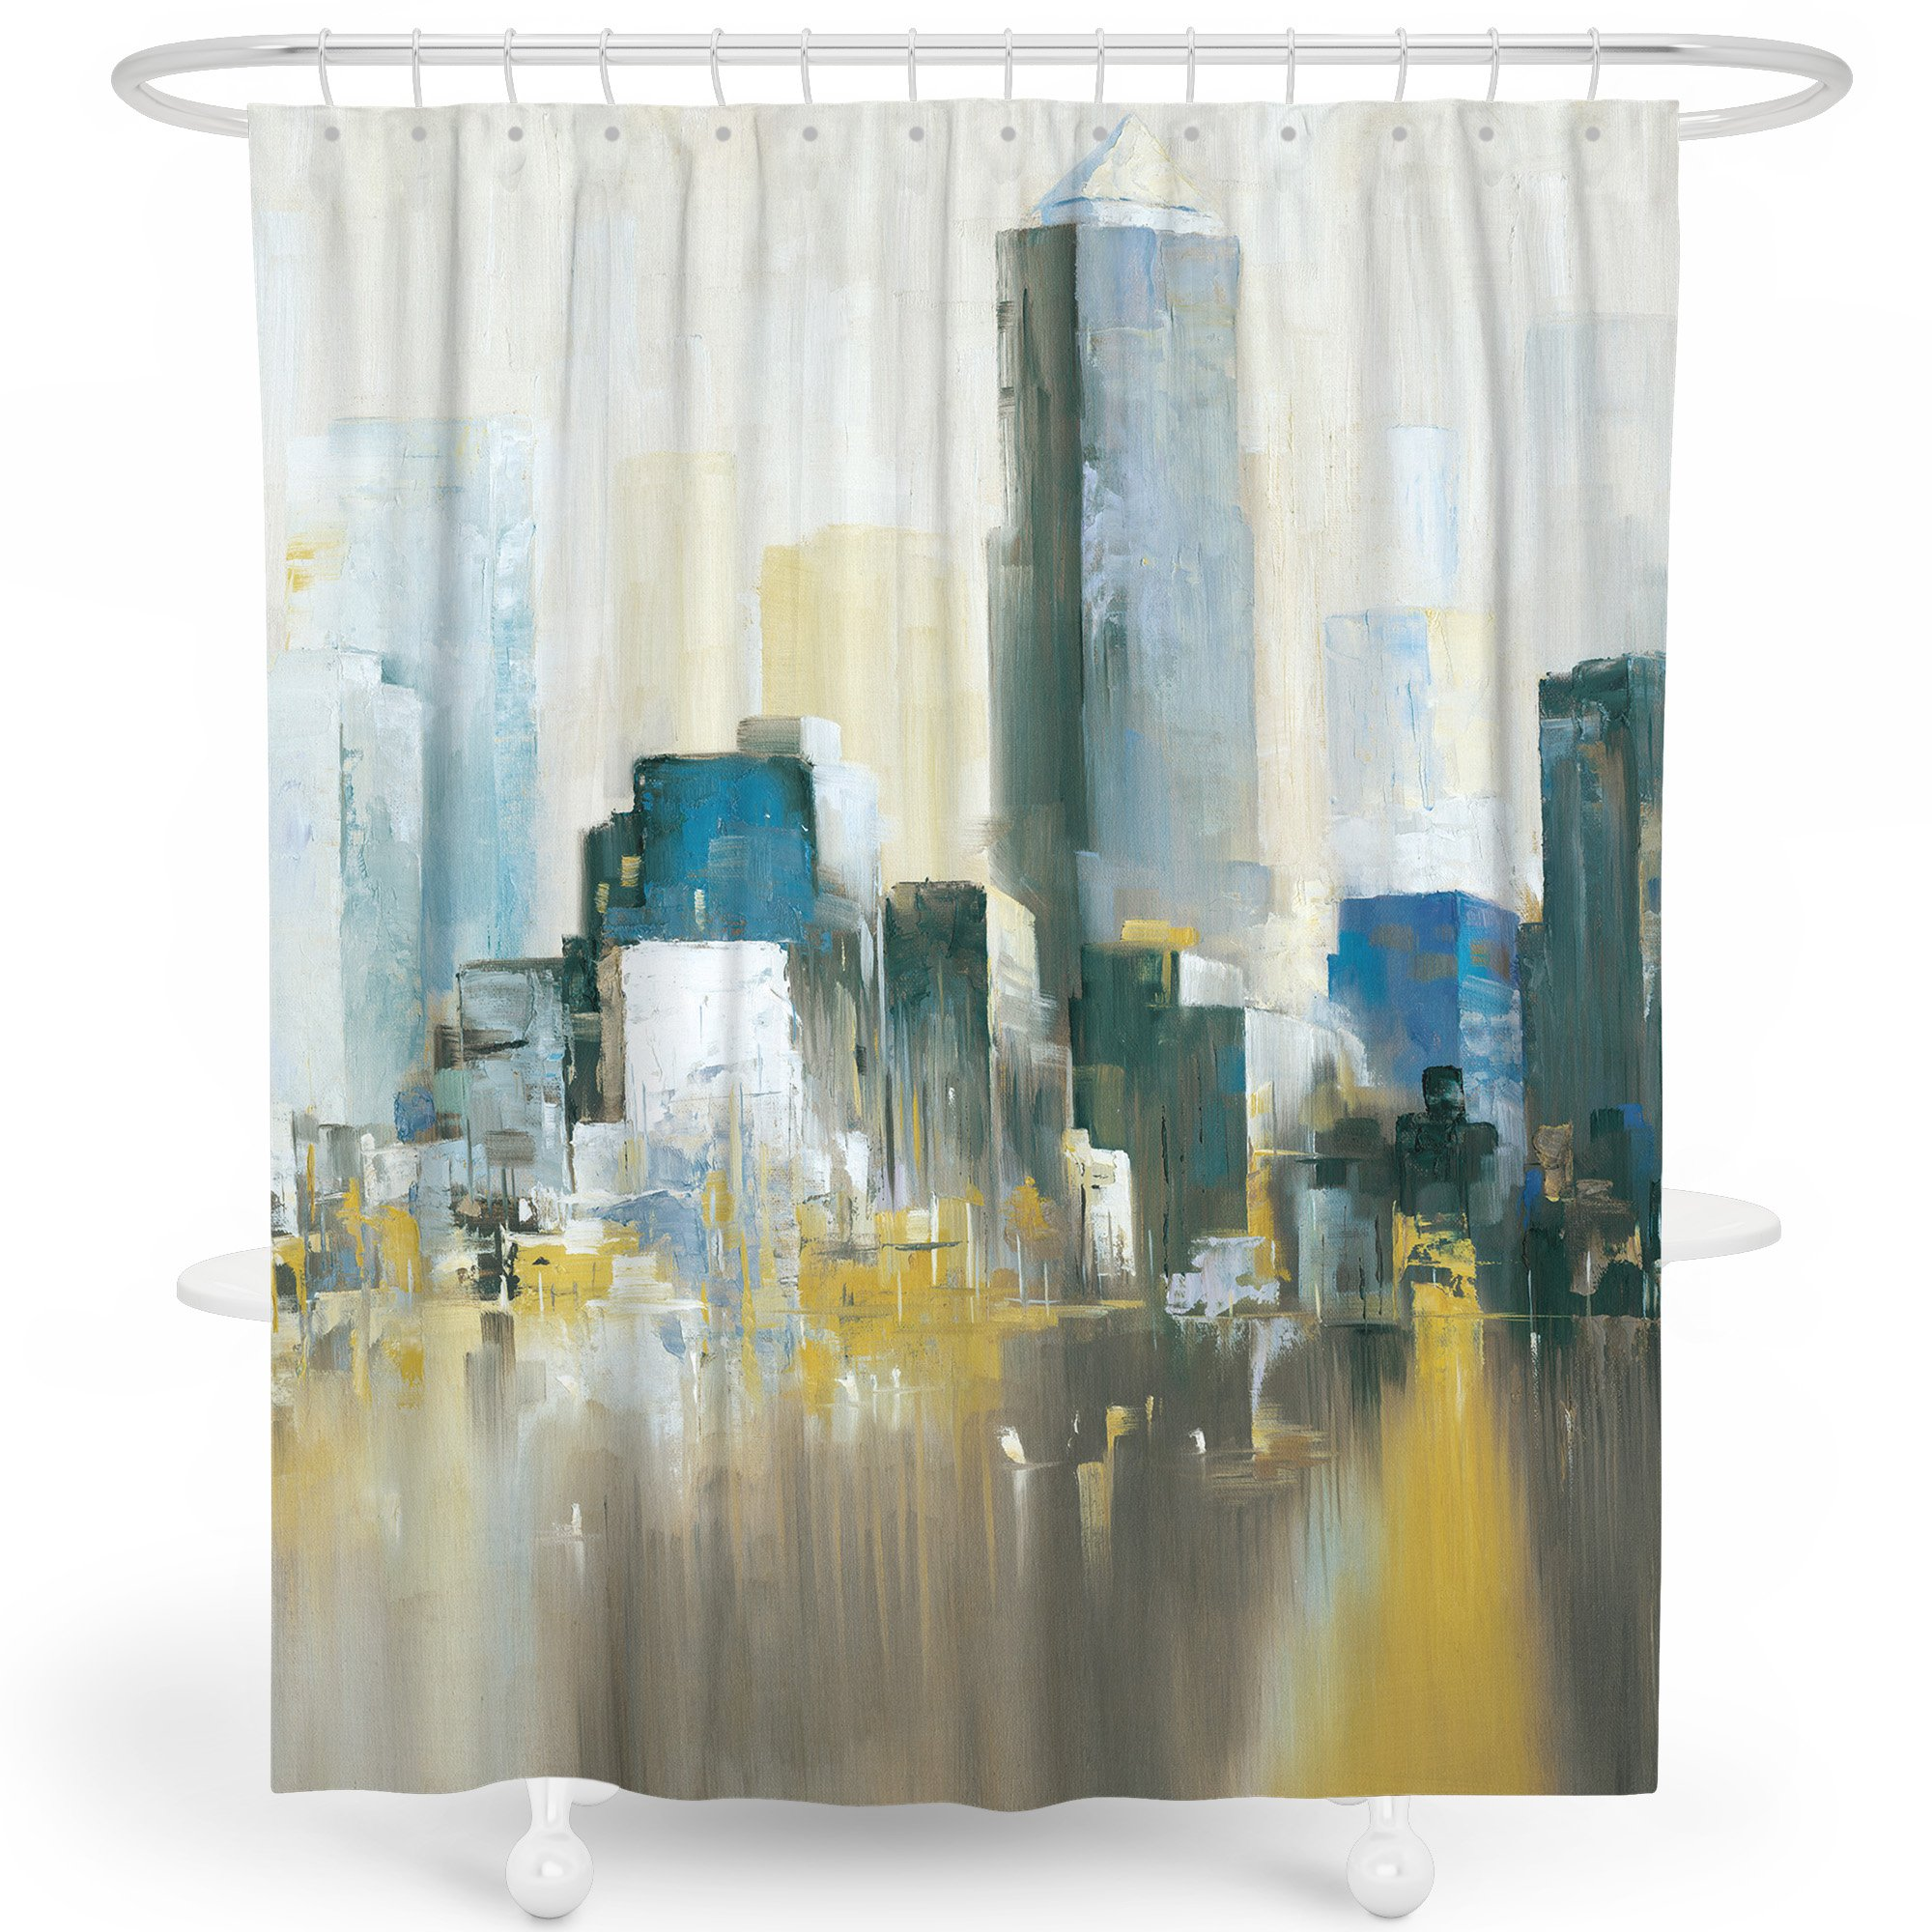 LIVETTY Kids Shower Curtain Oil-Painting New York City Scene Modern View Water-Proof Fabric for Bathroom Decor Weighted Hem 72x79 Inch Hooks Included